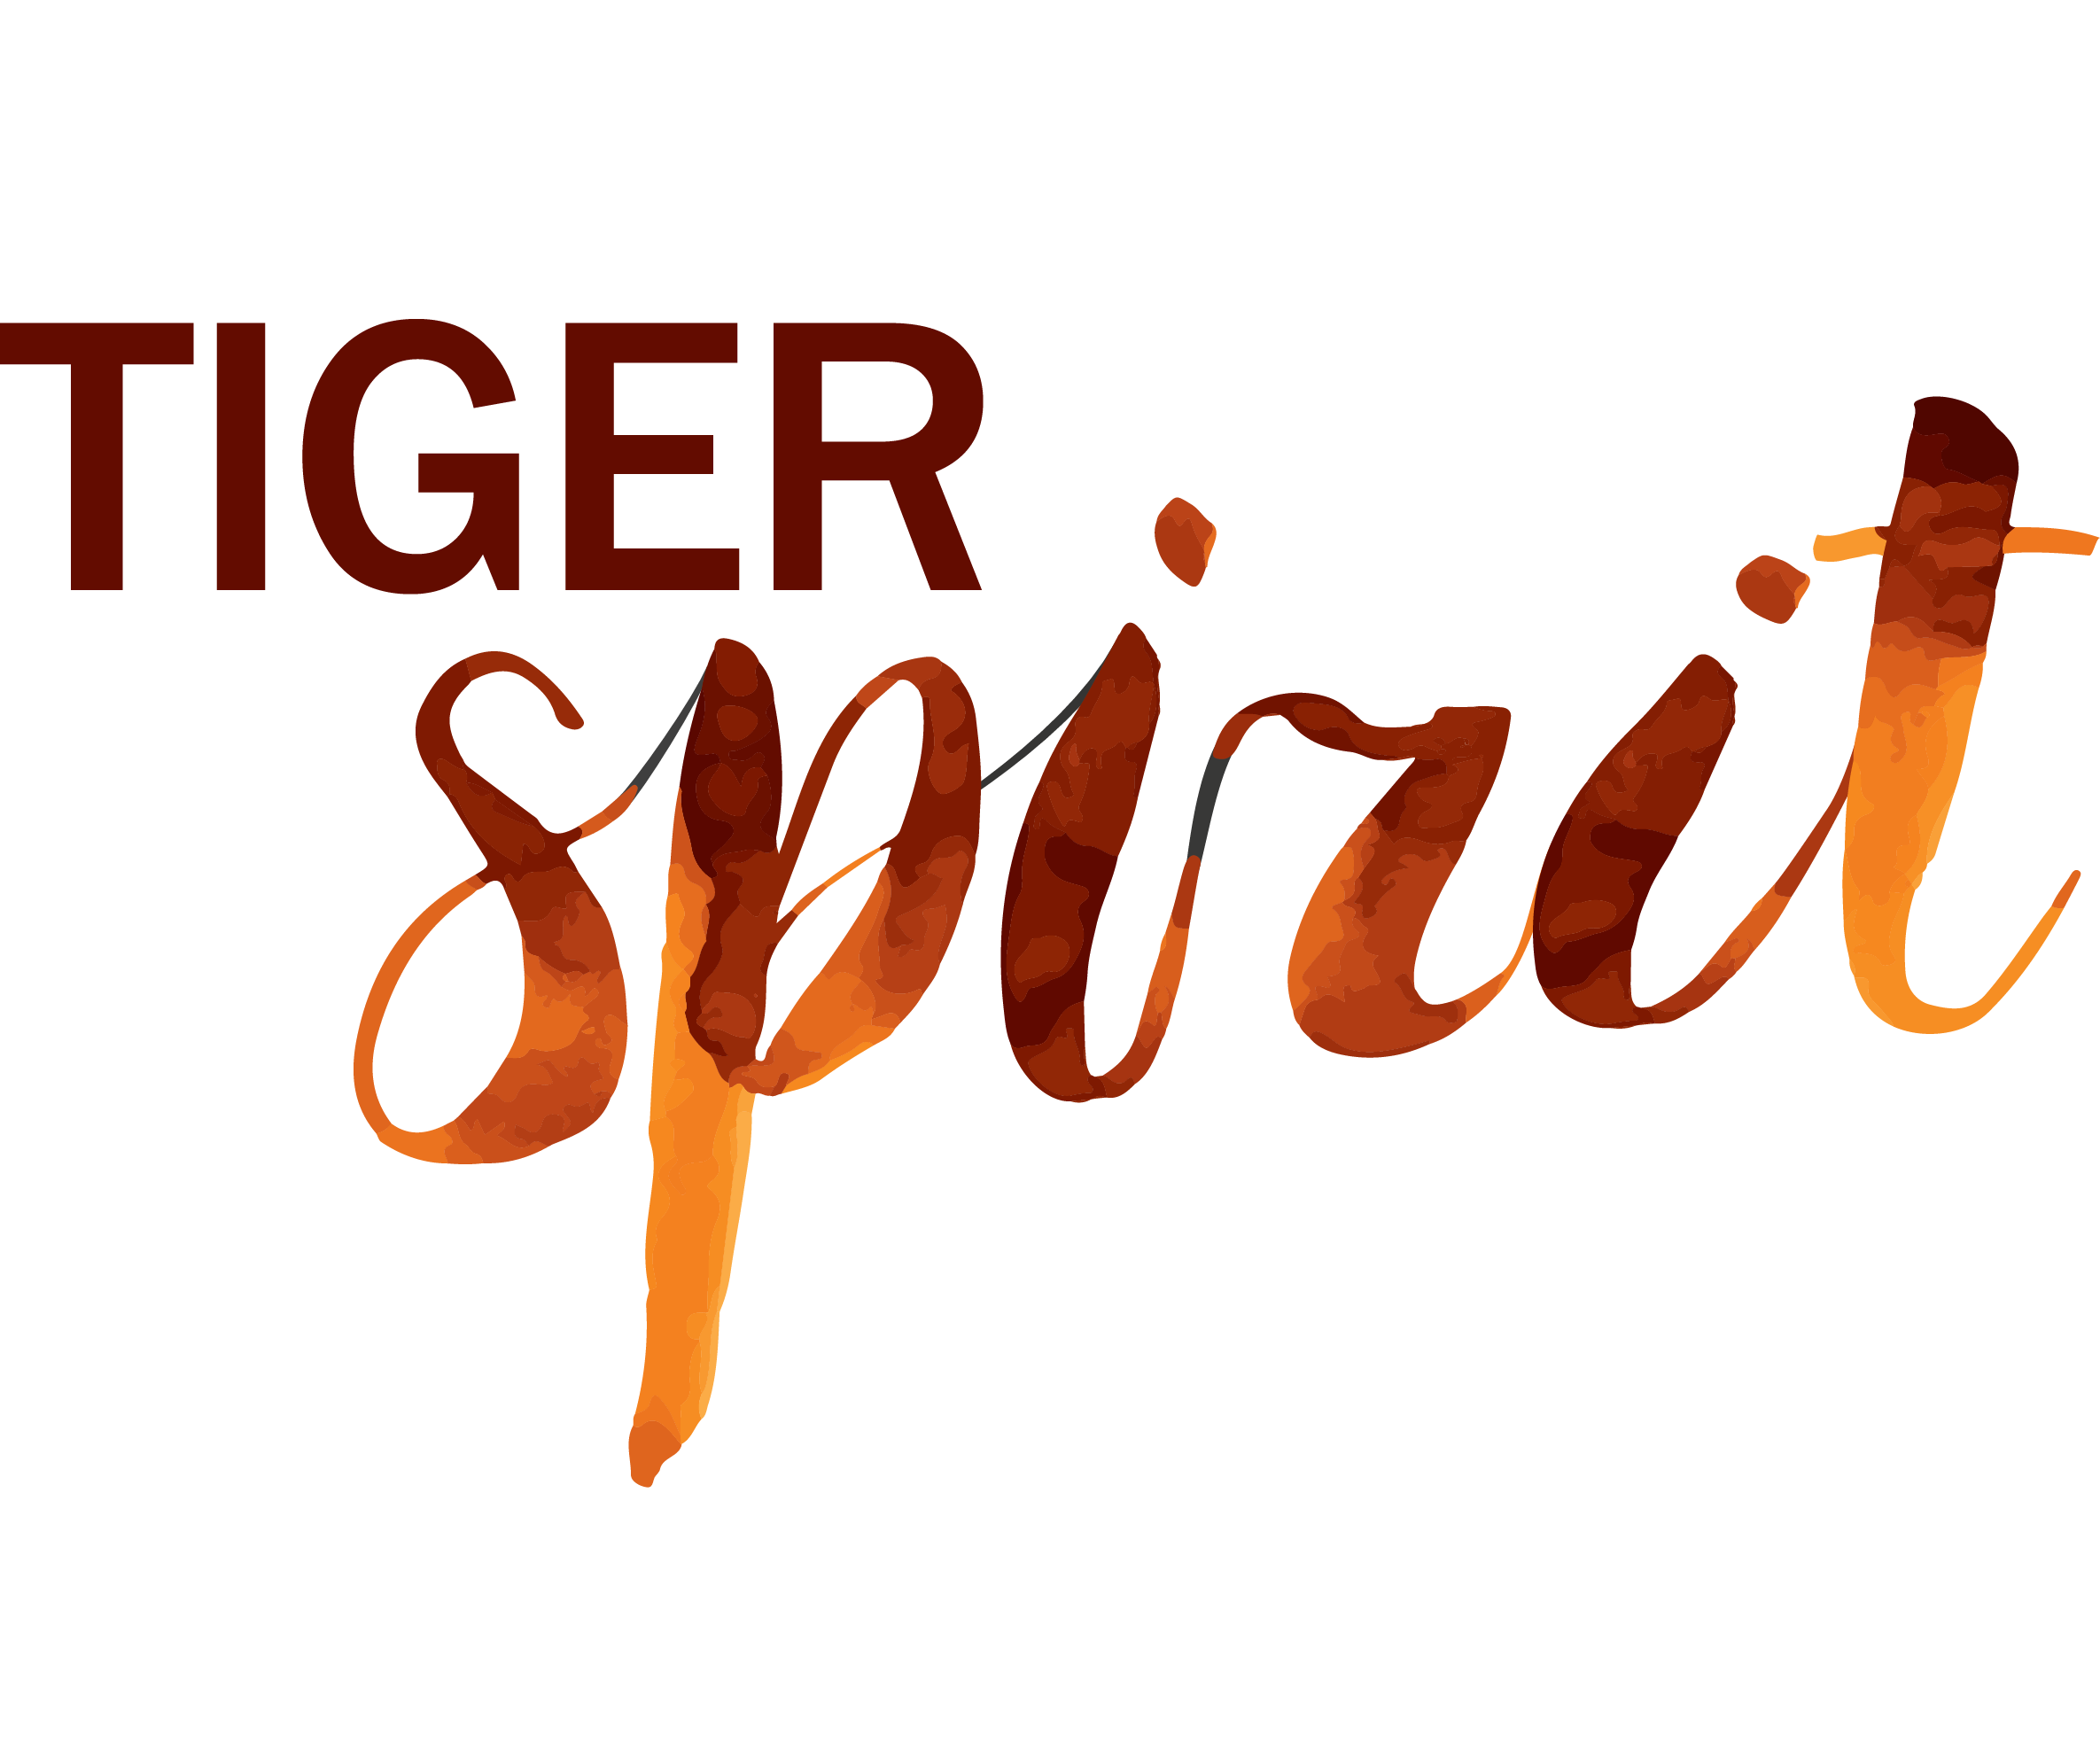 Yang-May Ooi ¦ Writer & Podcaster ¦ Tiger Spirit UK